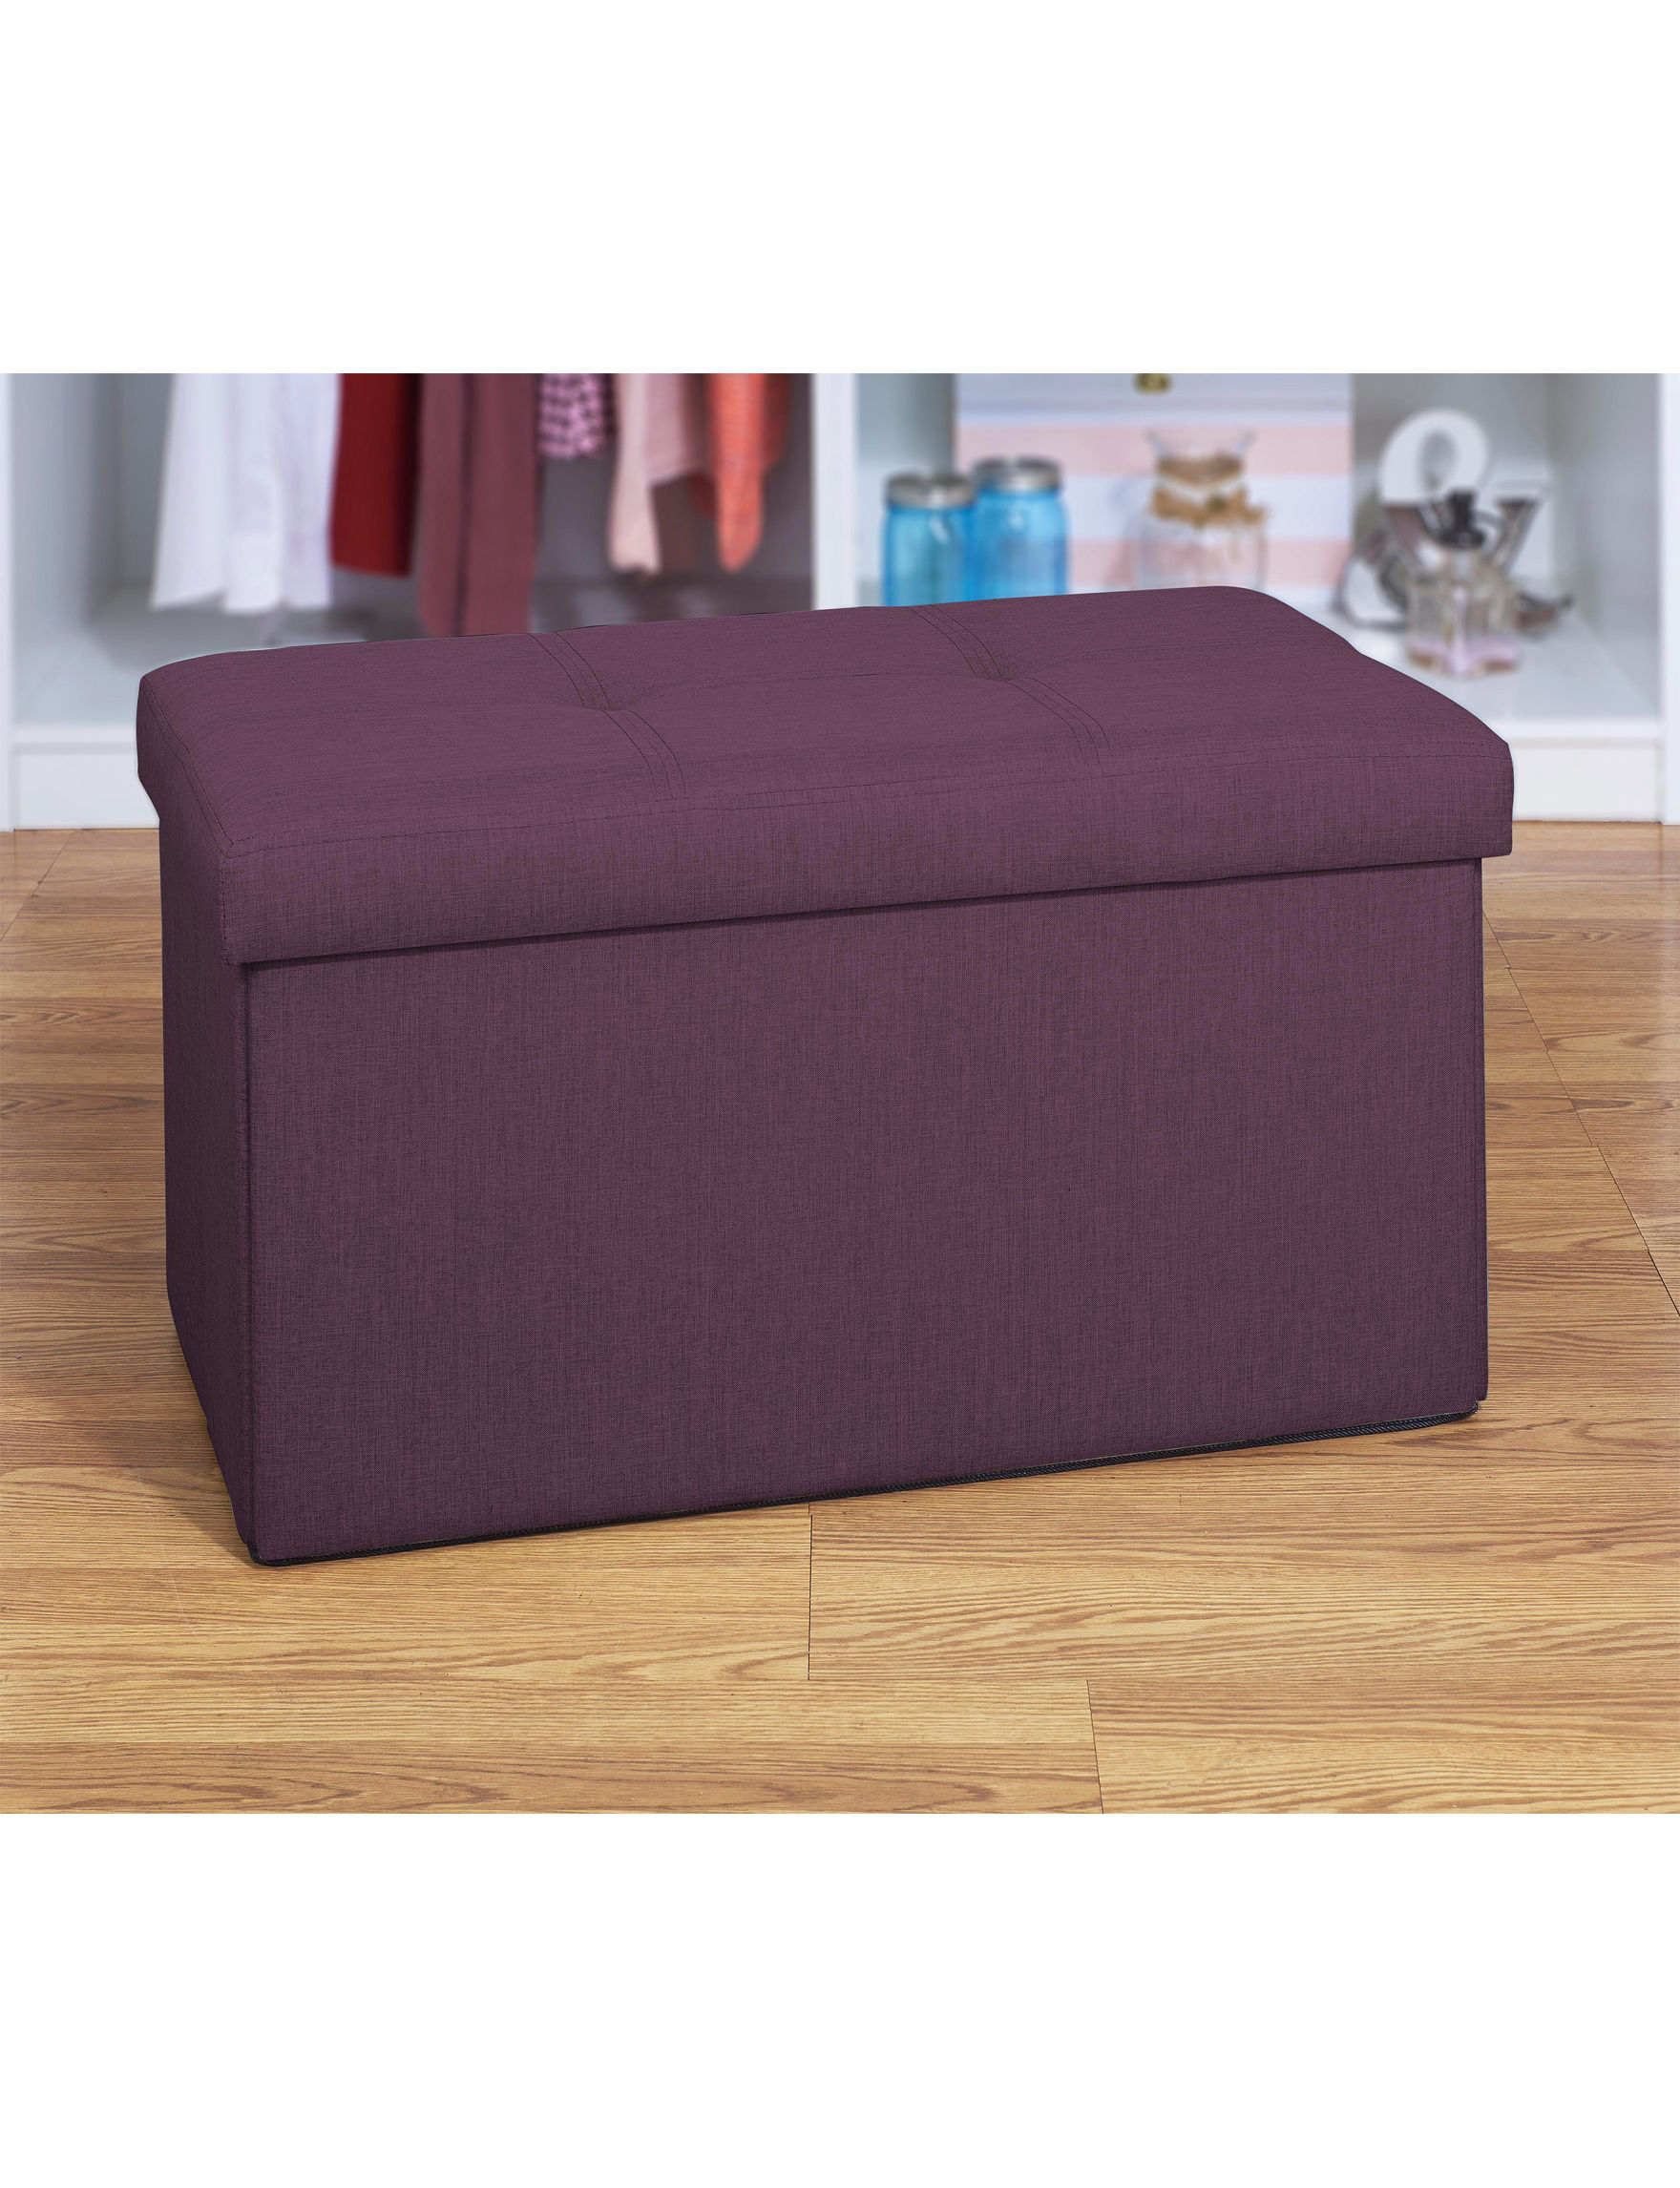 Simplify Burgundy Ottomans & Benches Living Room Furniture